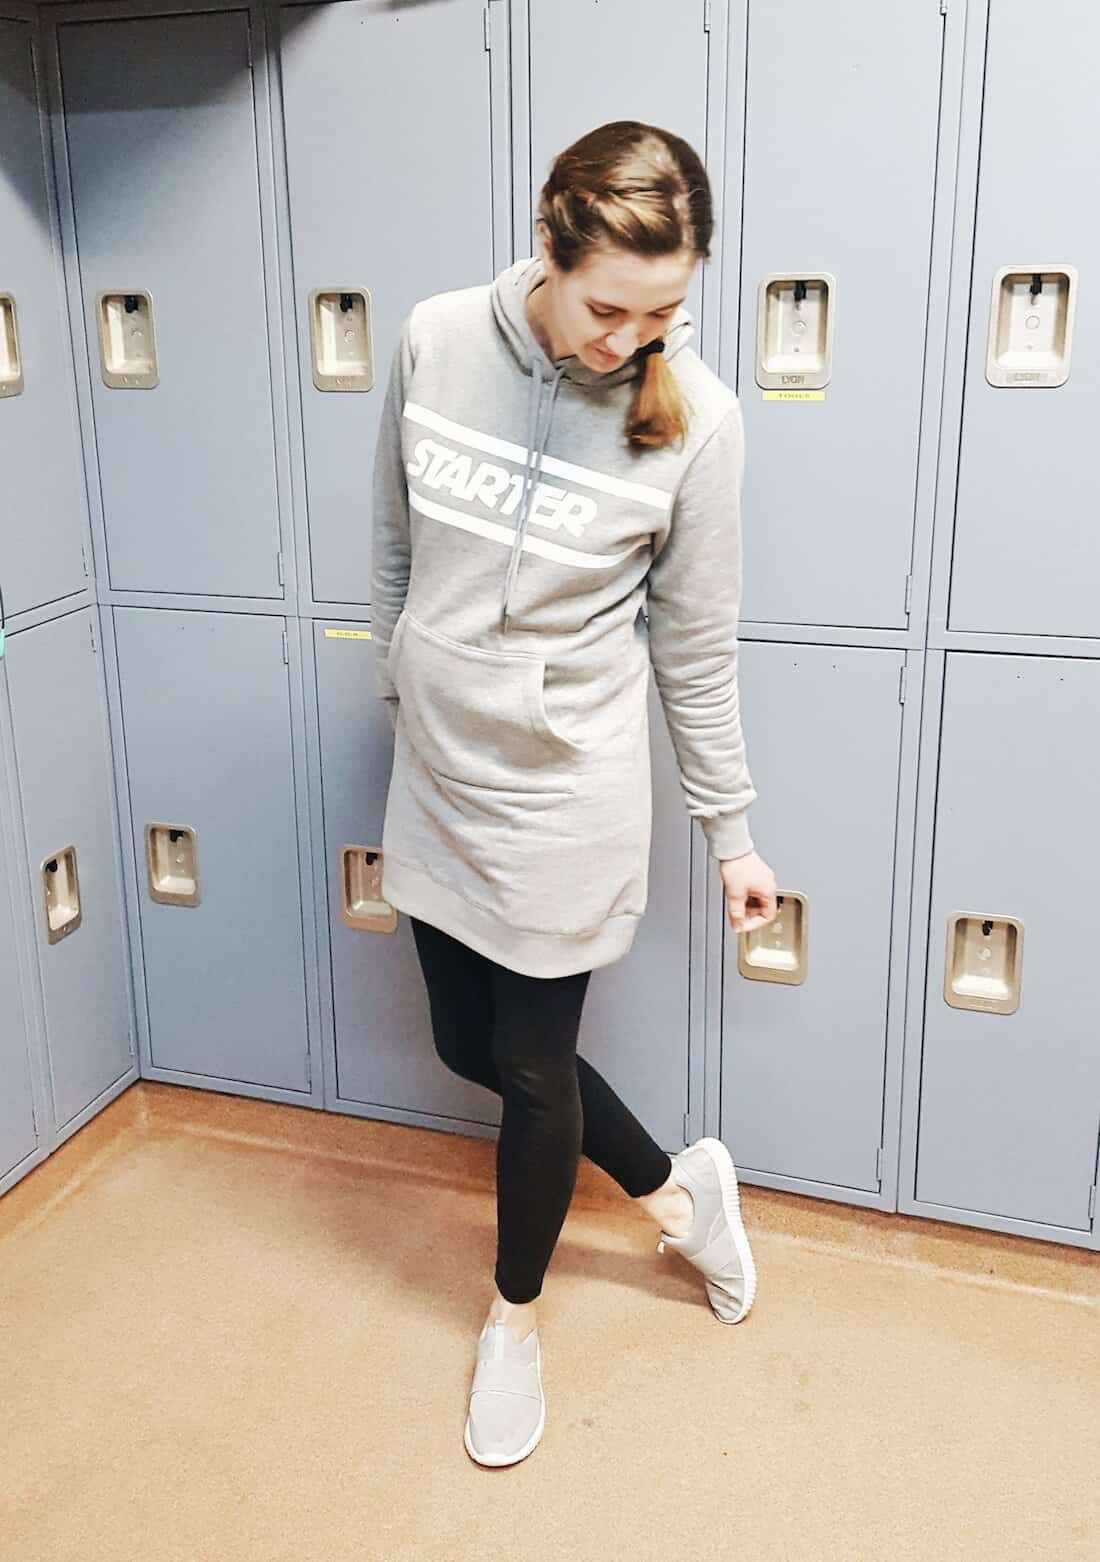 Comfy Casual First Trimester Outfit Idea: Sweatshirt Dress with leggings #maternityfashion #activewear